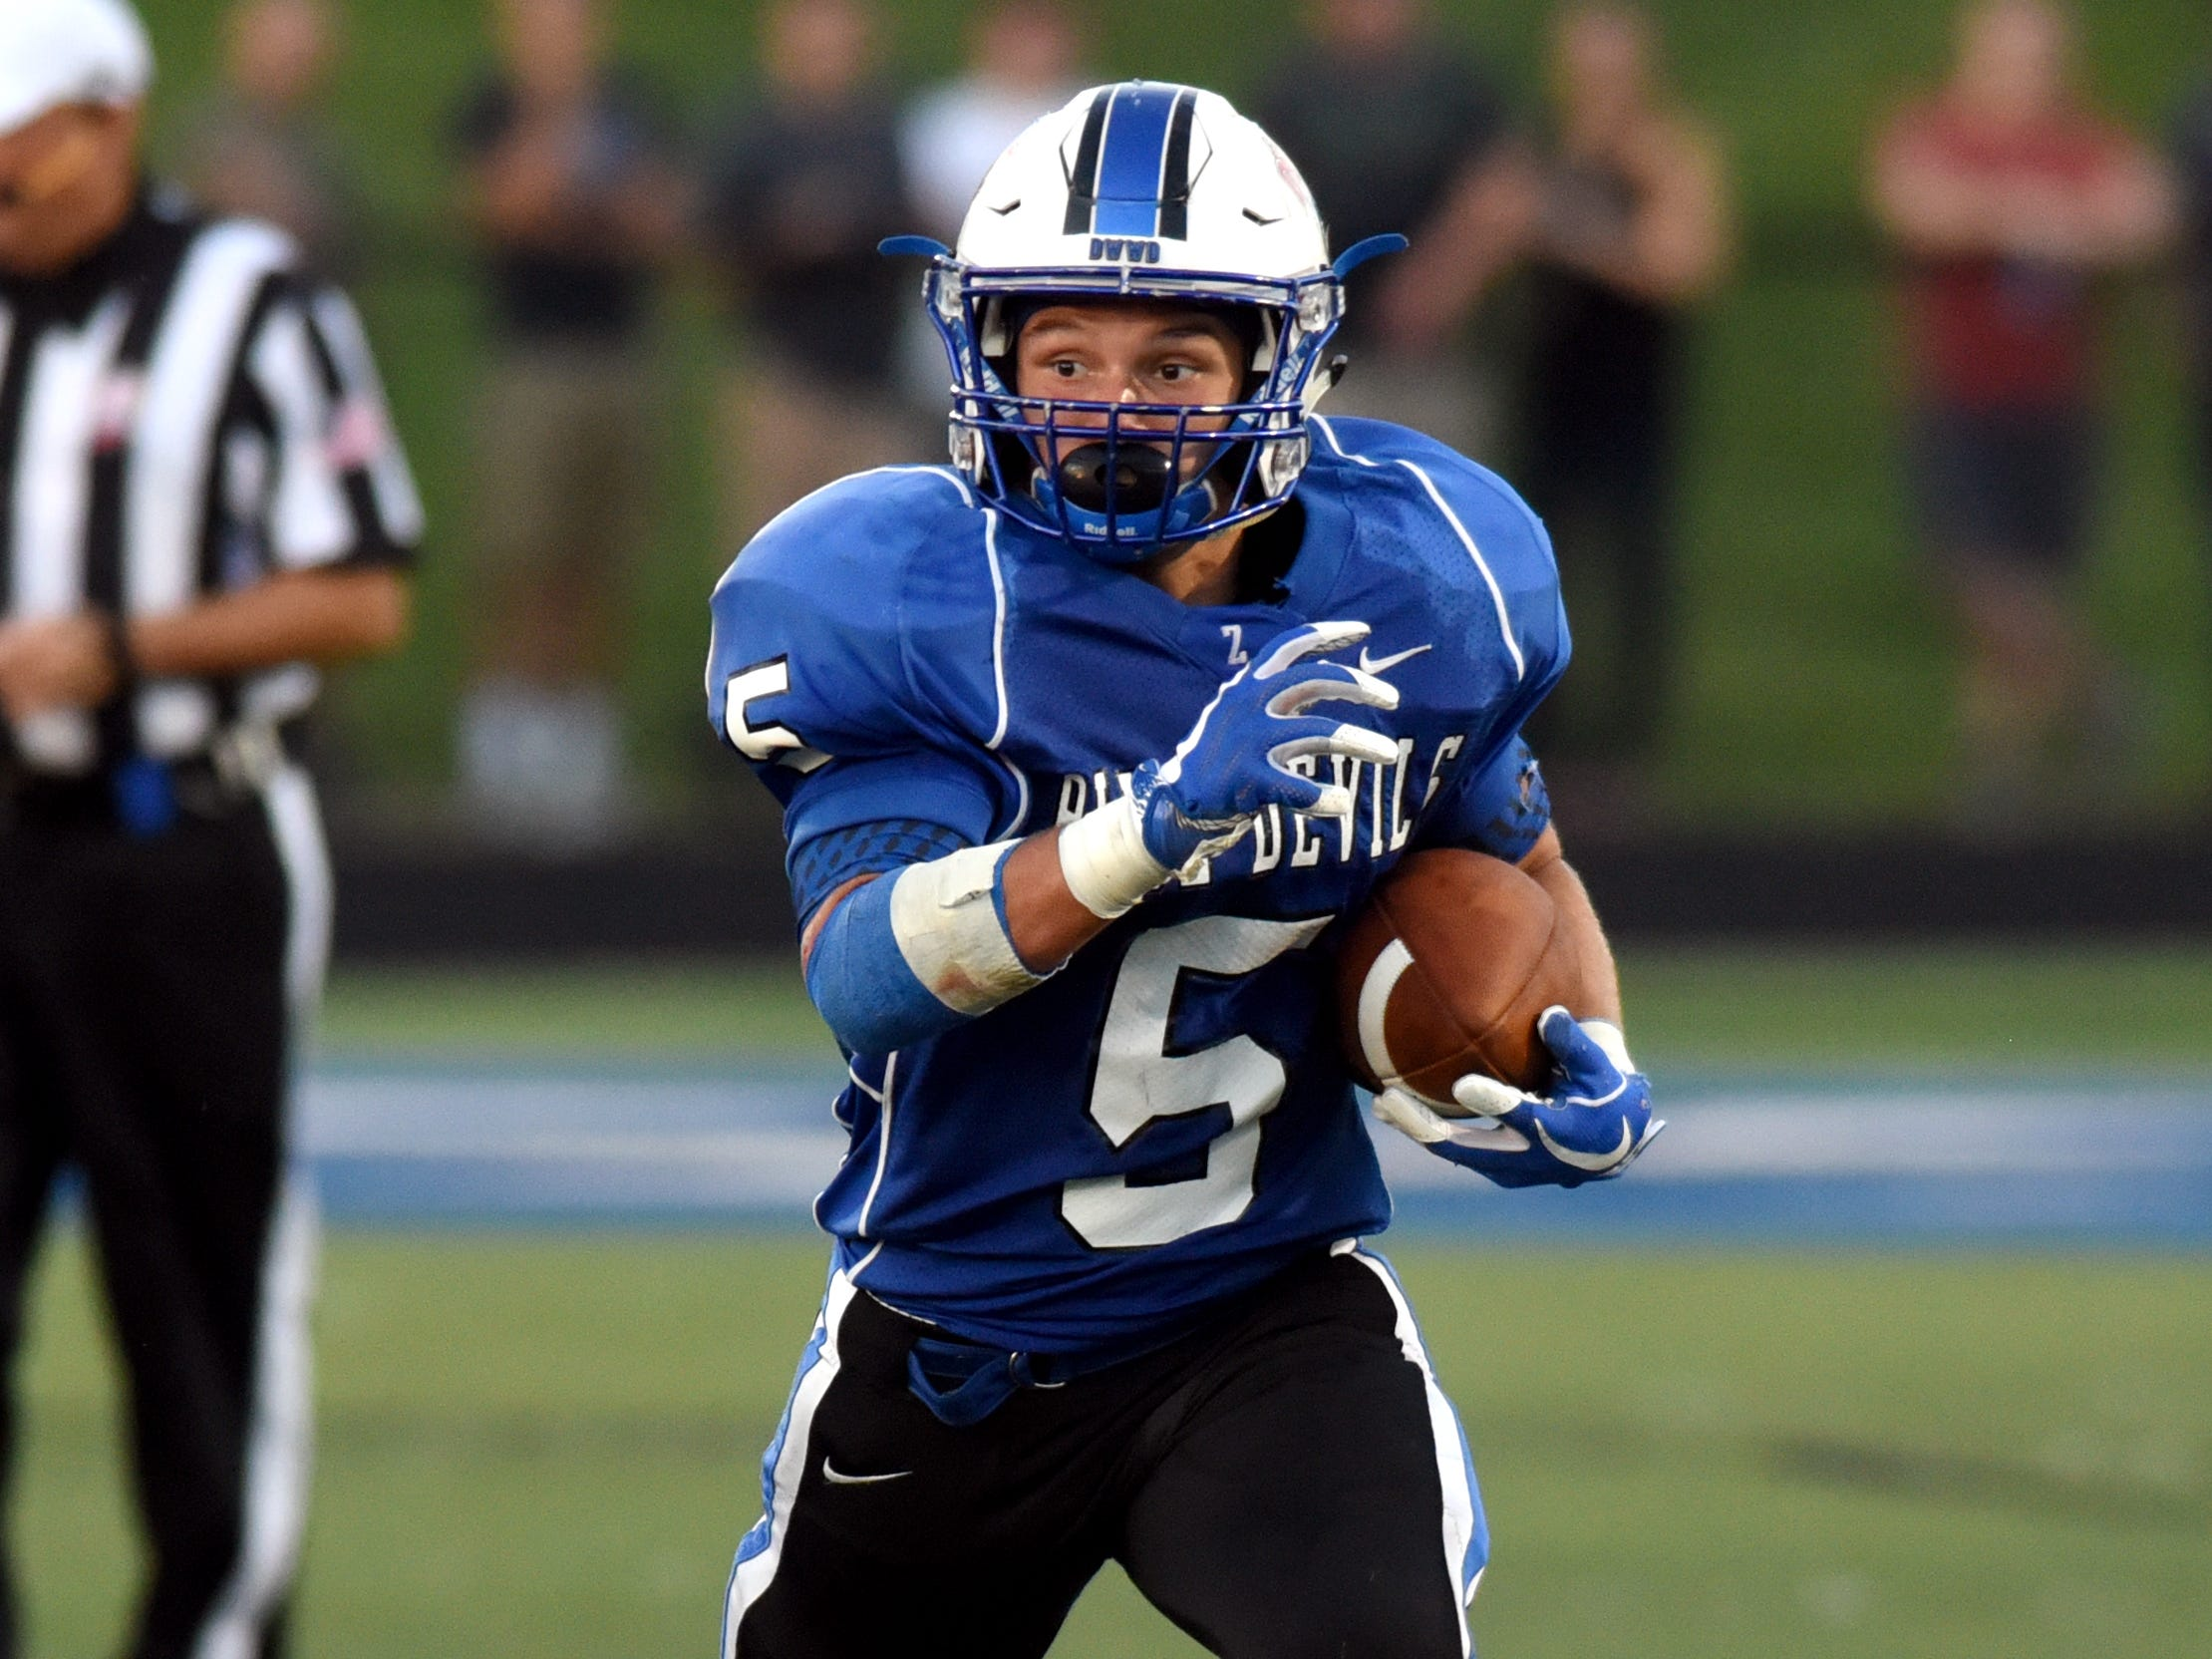 Zanesville's J.C. Curtis runs with the ball during the second quarter. Granville held on for a 17-14 win against the Blue Devils on Friday night at John D. Sulsberger Memorial Stadium.